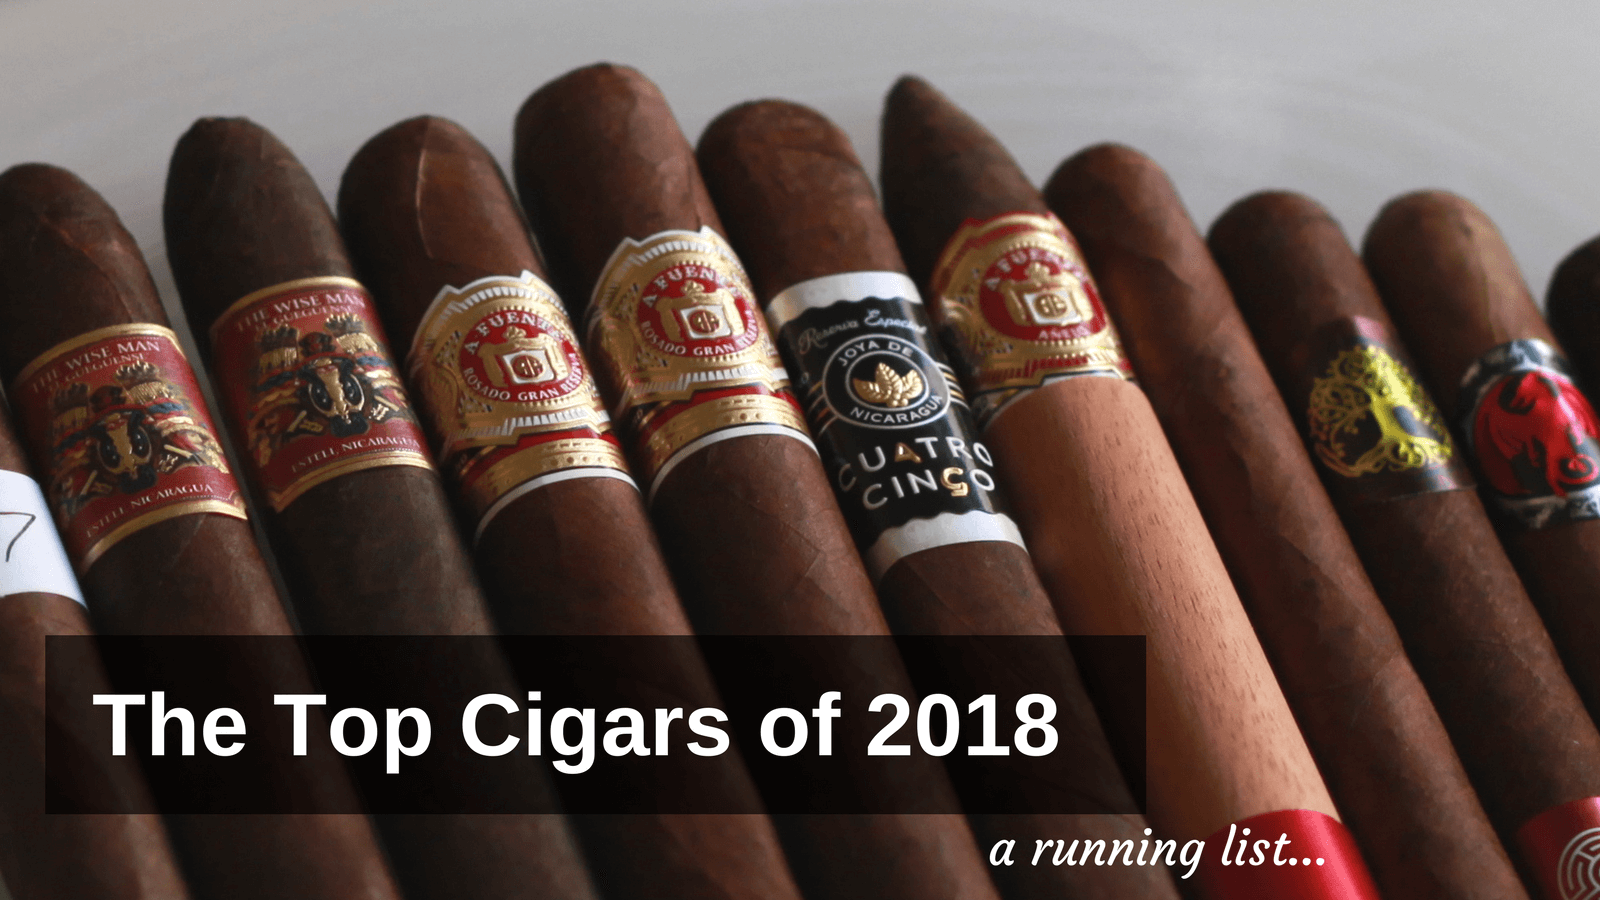 The Top Cigars of 2018